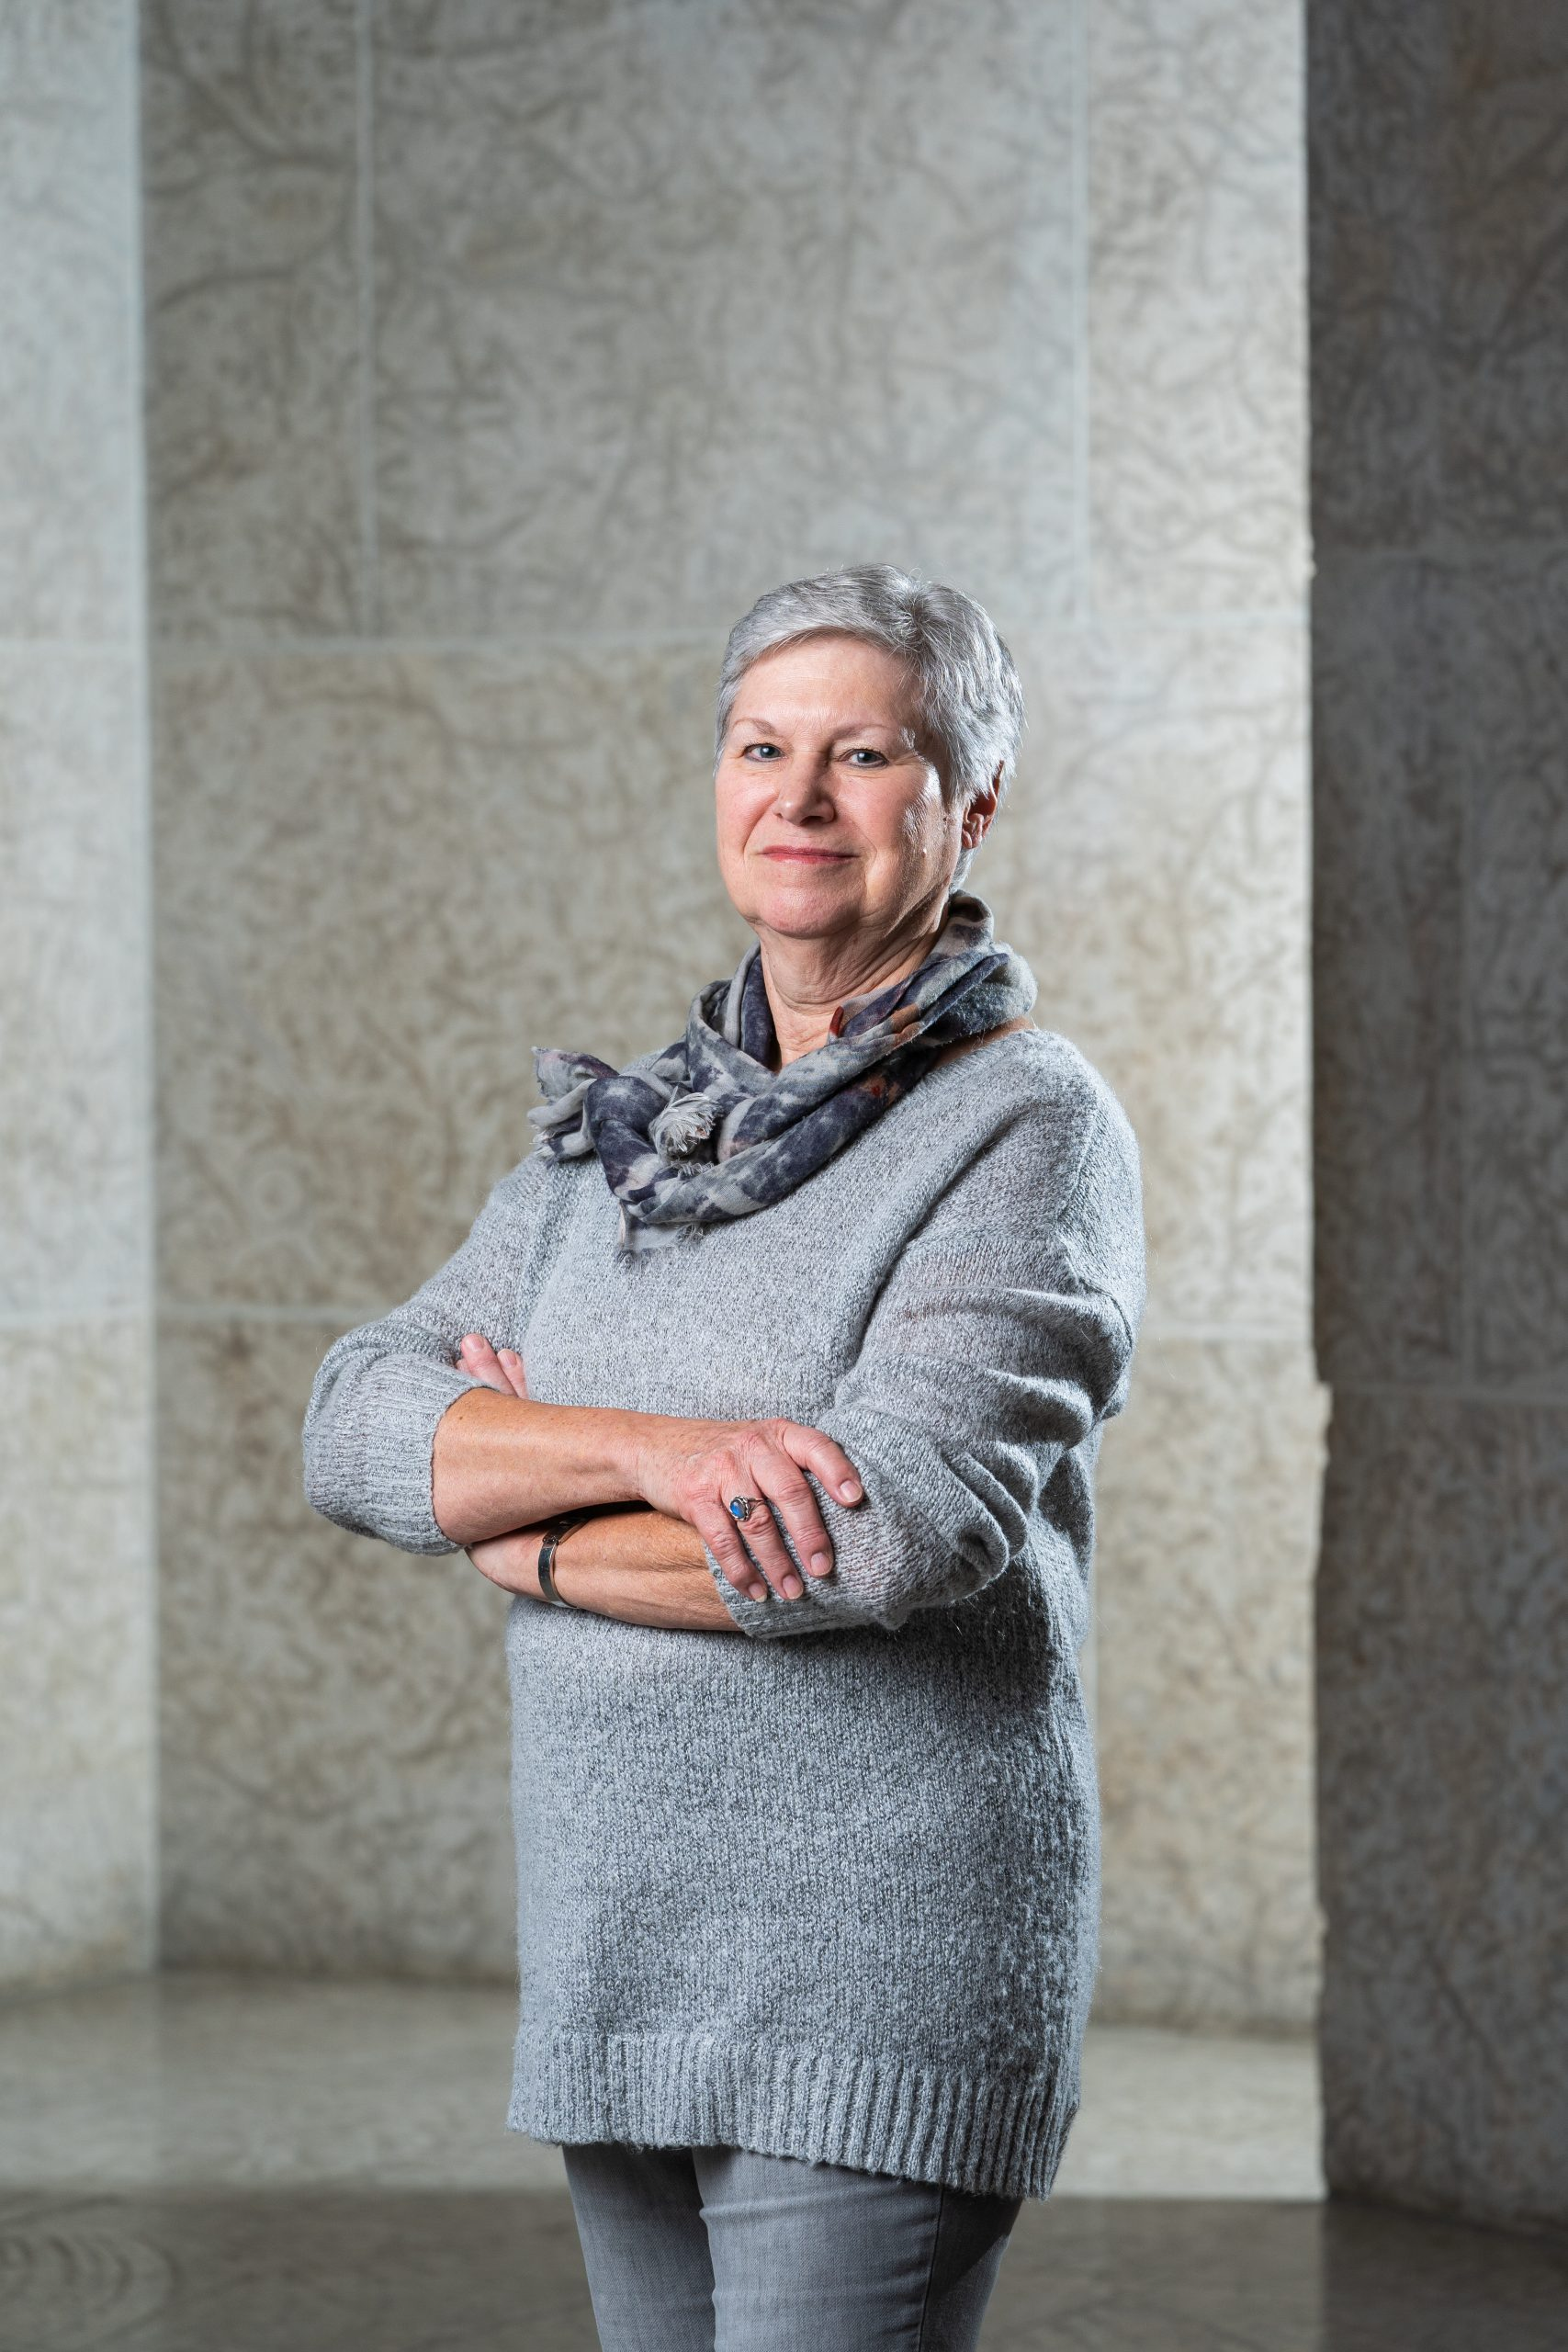 Dr.-Darlene-Coward-Wight-WAG-Curator-of-Inuit-Art-scaled